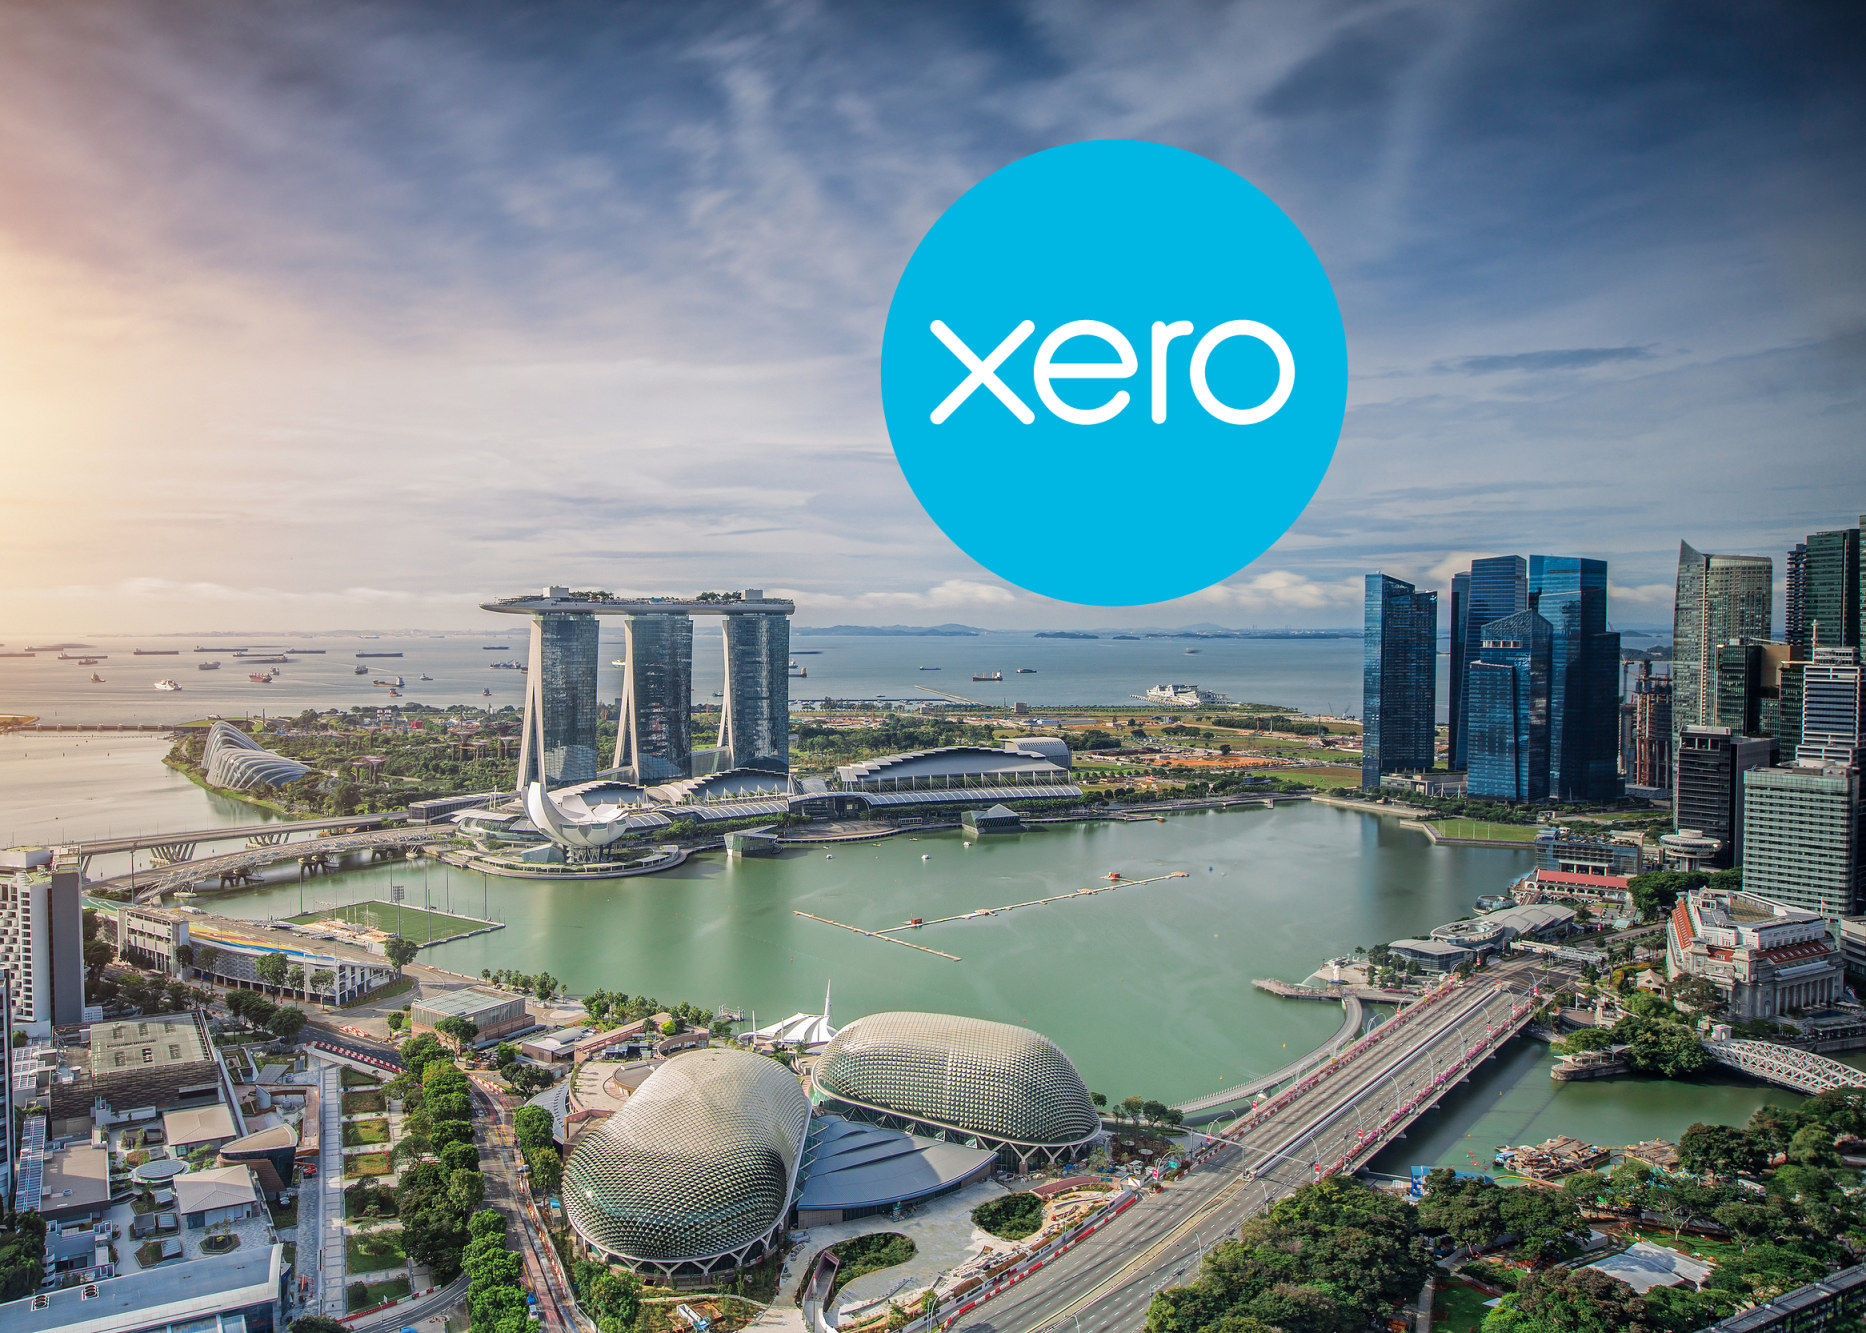 Xero Expansion: 7 key takeaways from Xero's first Asian Roadshows